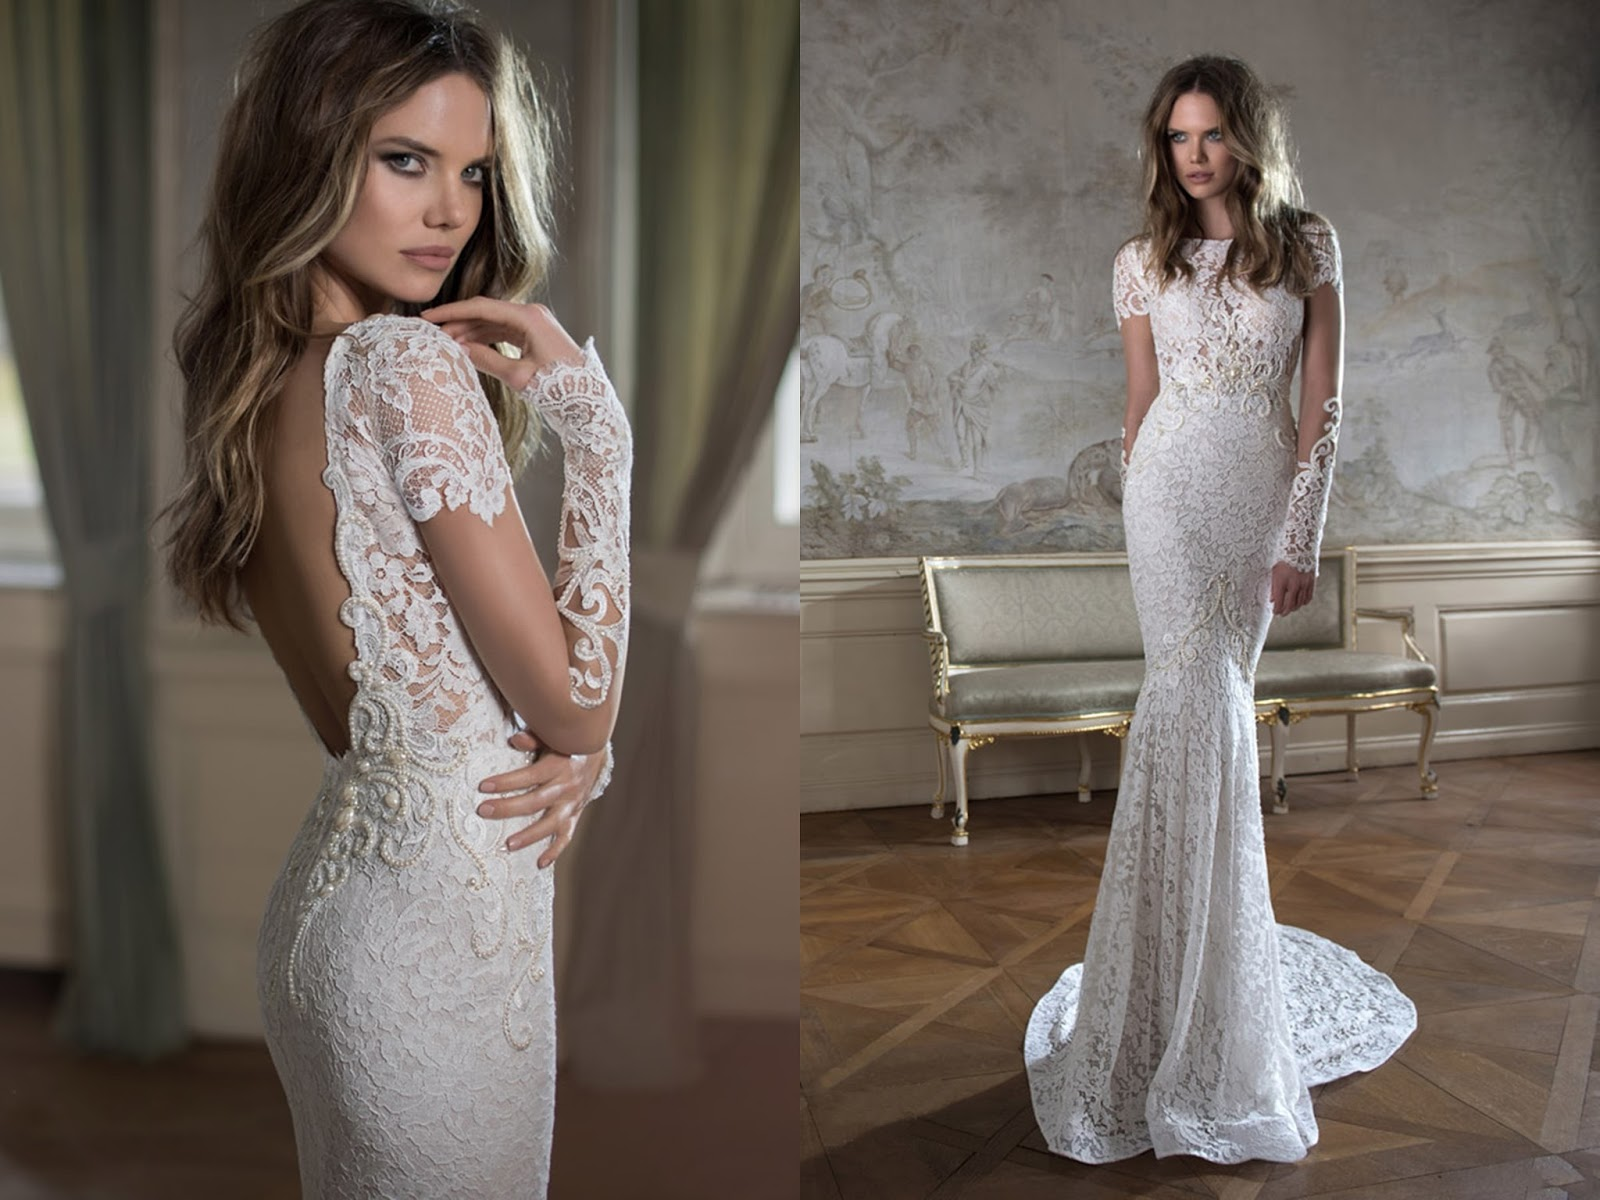 wedding dresses with lace sleeves | The Best Wedding Dresses